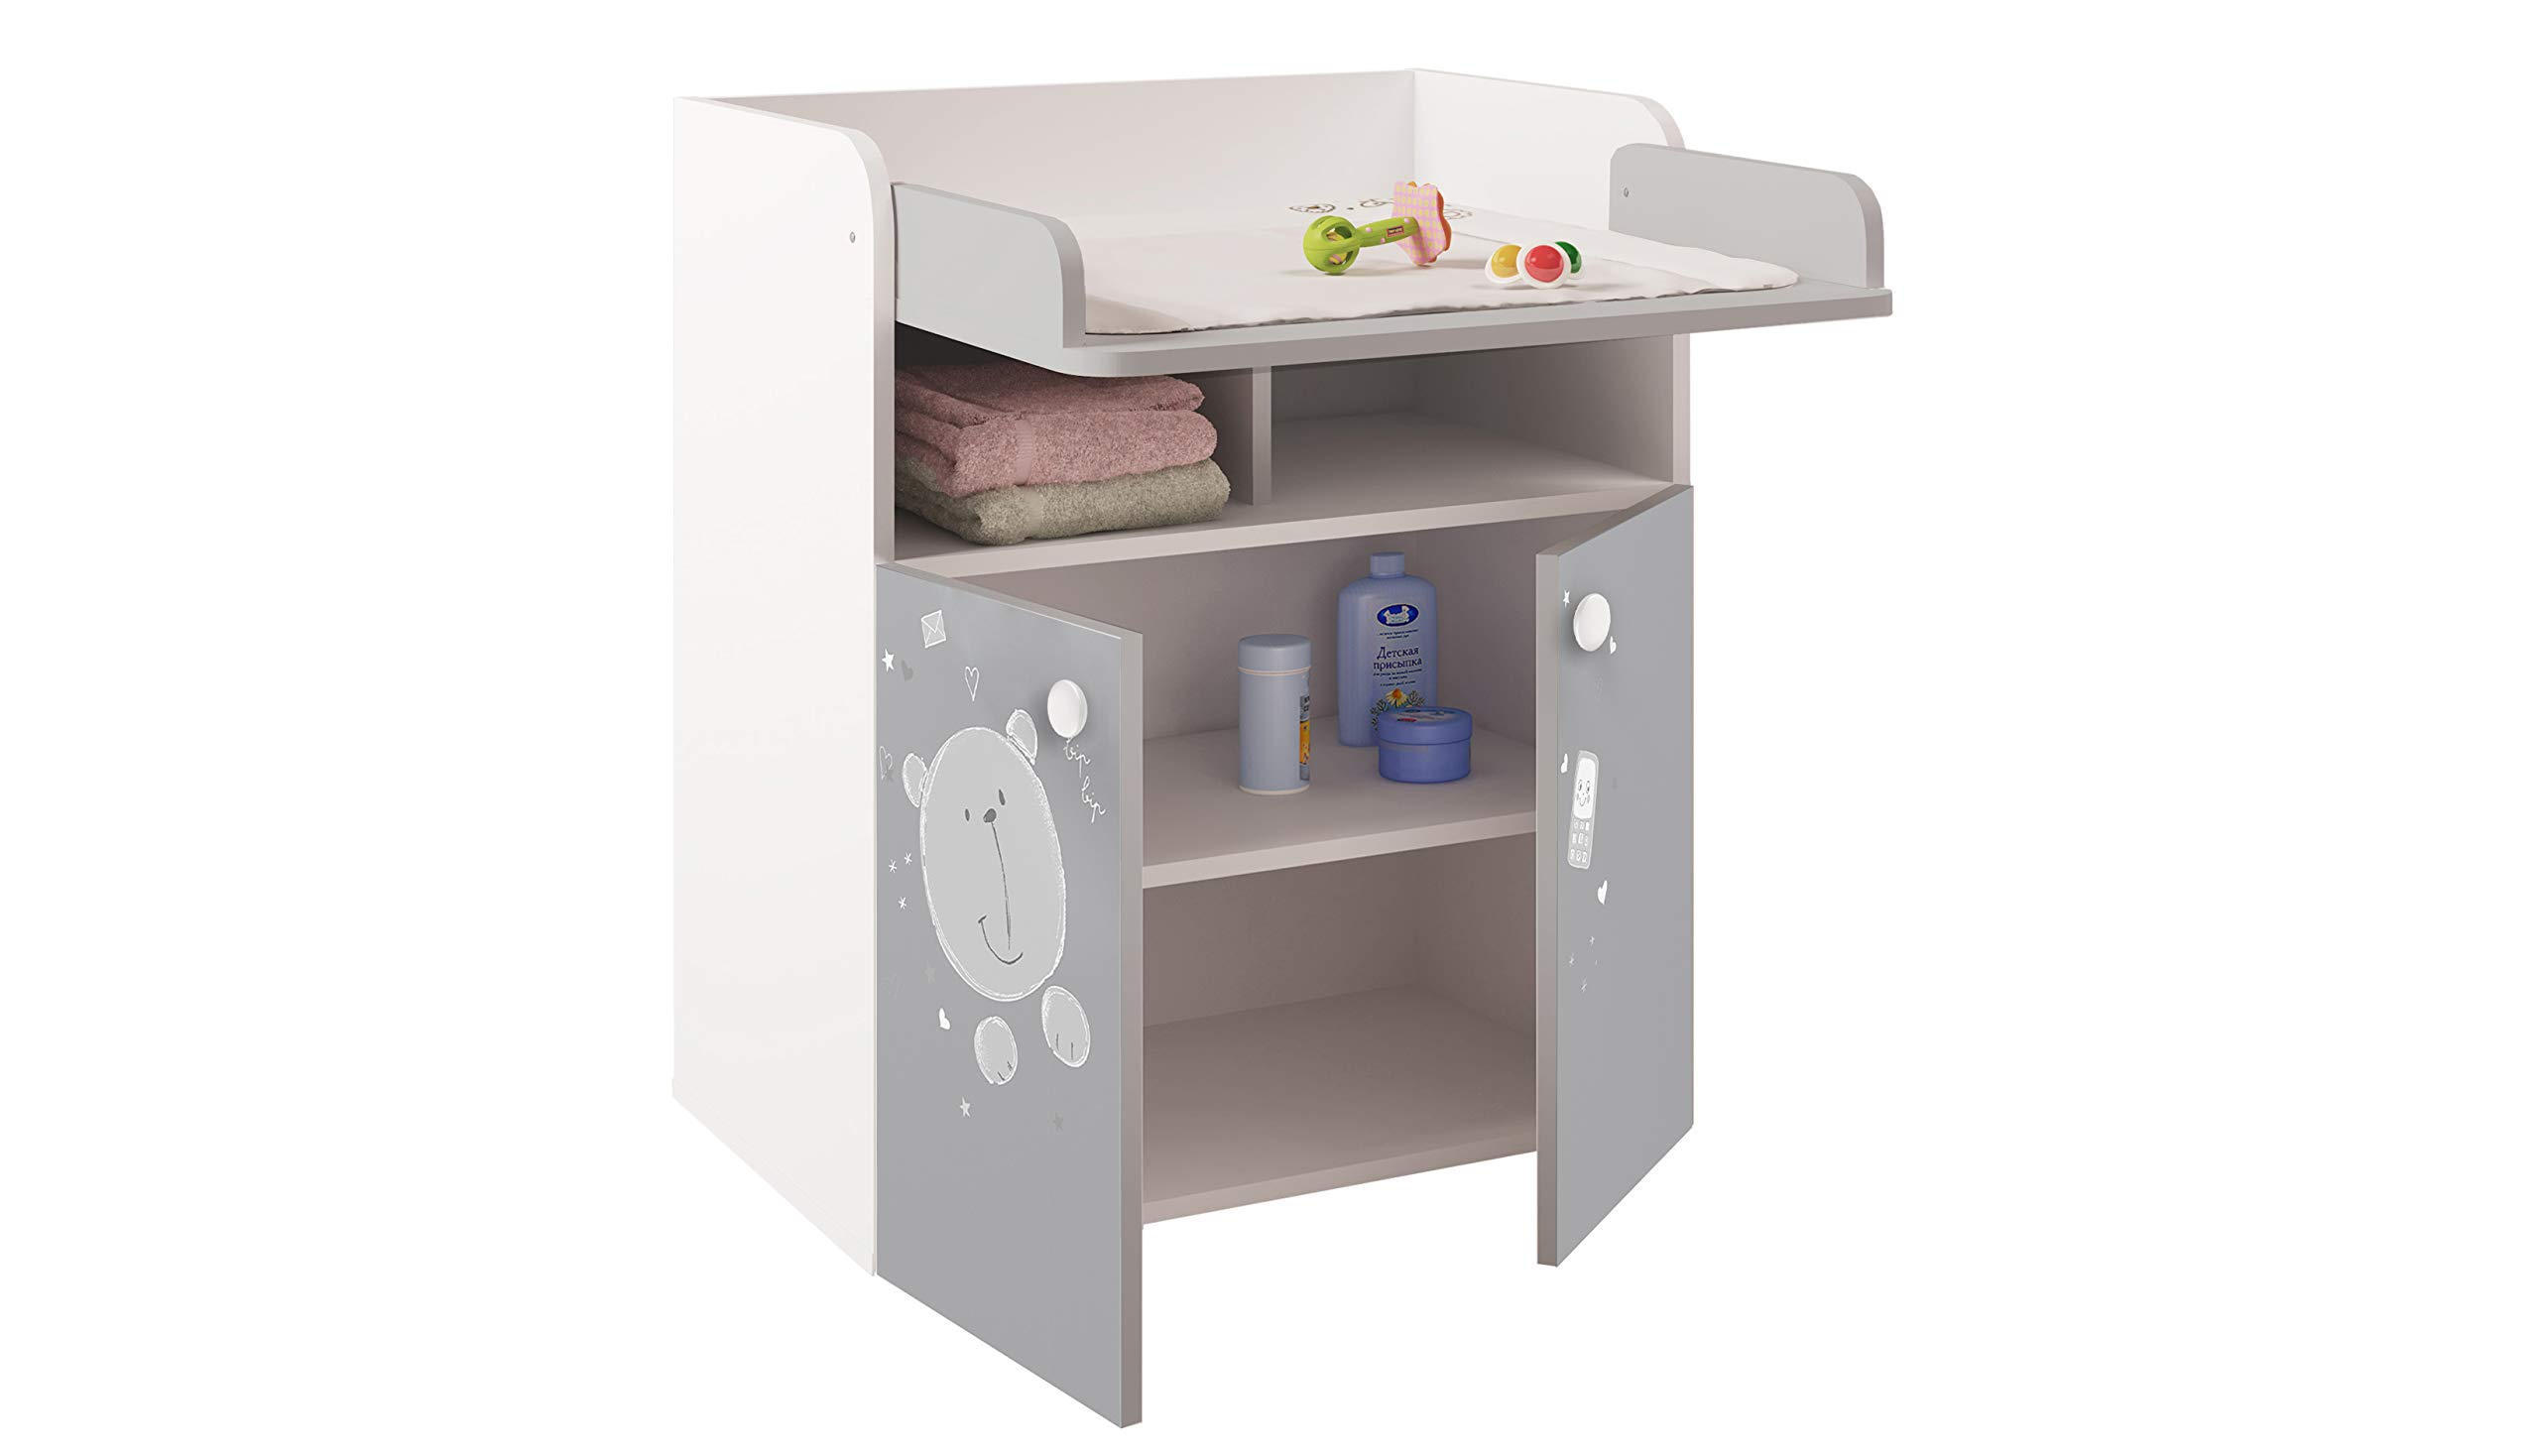 Polini French, Drawer Unit 1270, Teddy Print, White/Grey Kidsaw Dimensions (LxWxH): 47 x 70 x 86 cm French design Detachable changing mat leaves no marks on the dresser 3